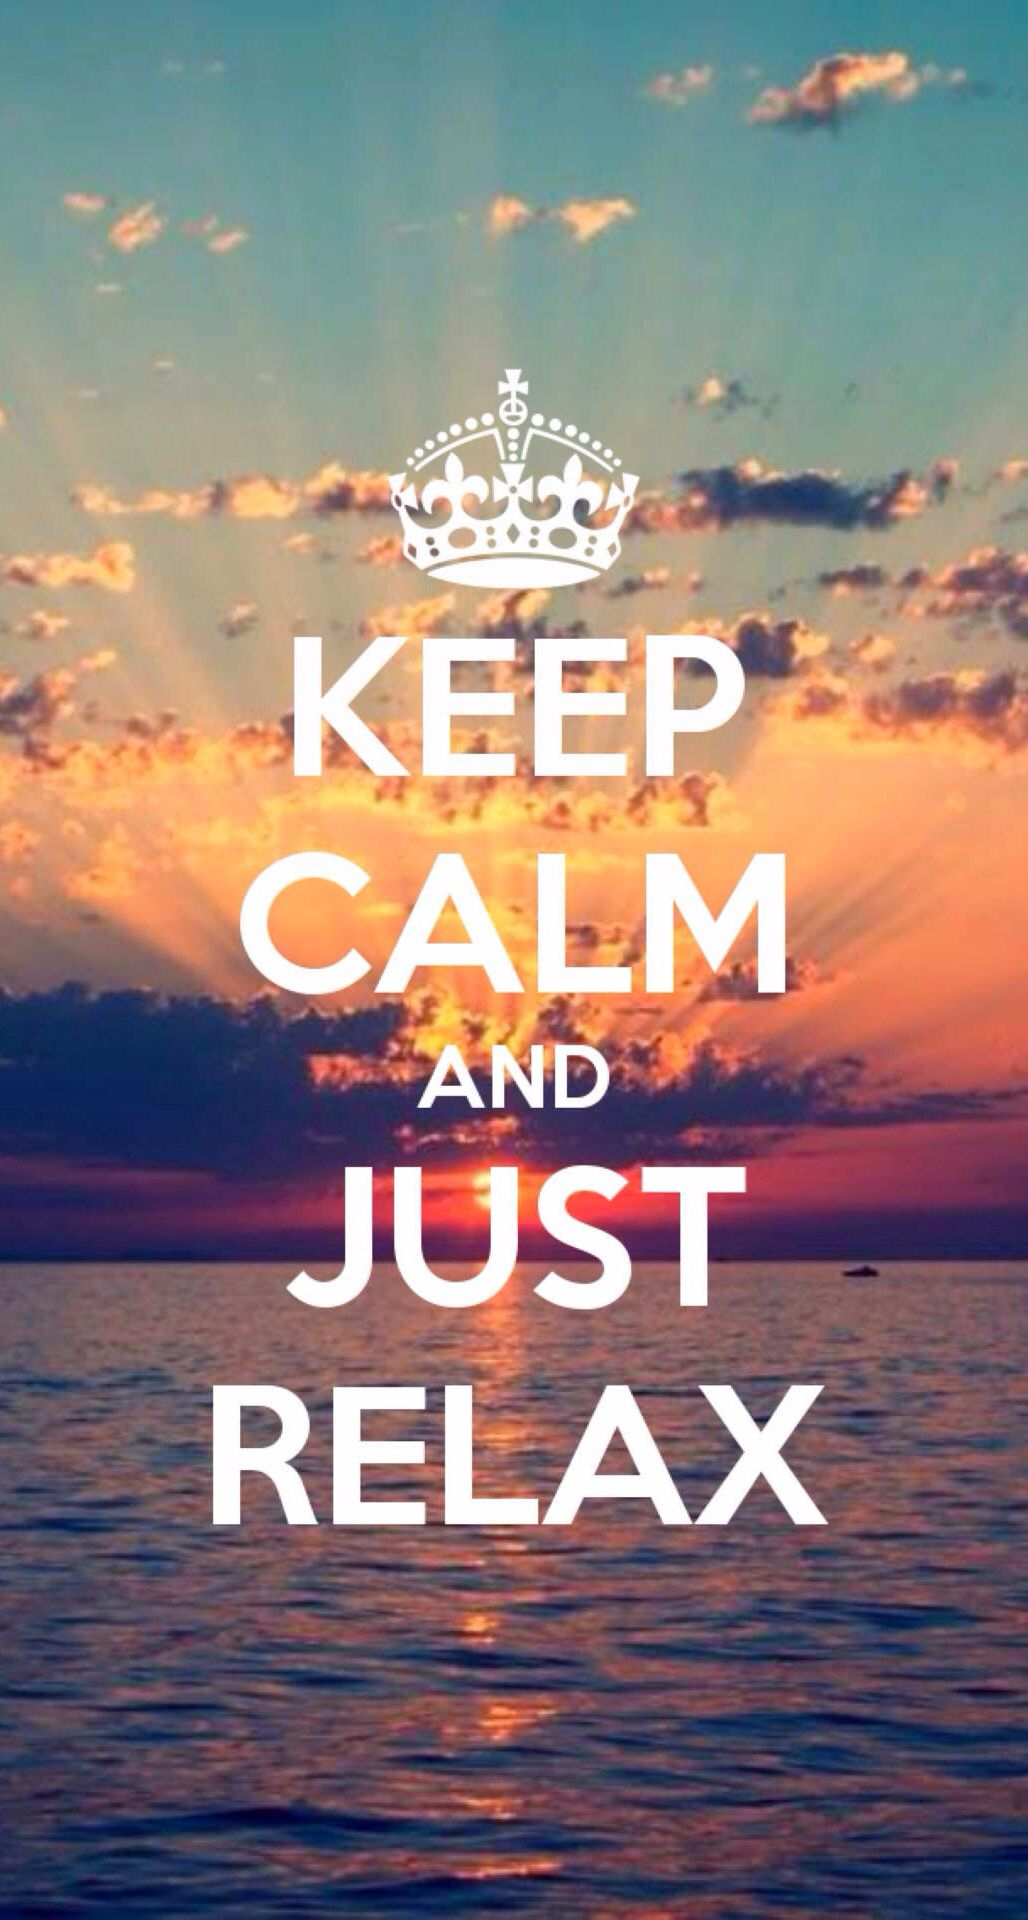 Keep Calm and just relax Keep calm quotes, Calm quotes